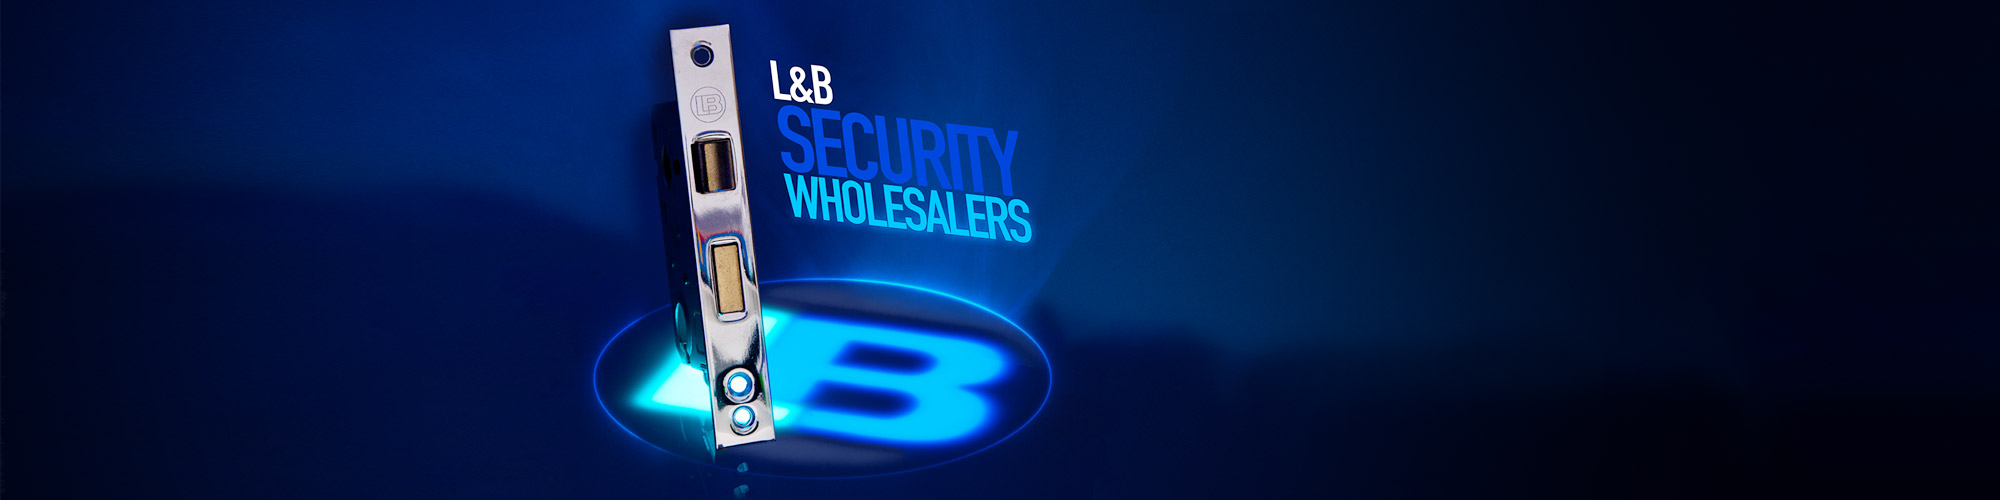 L&B Security Wholesalers